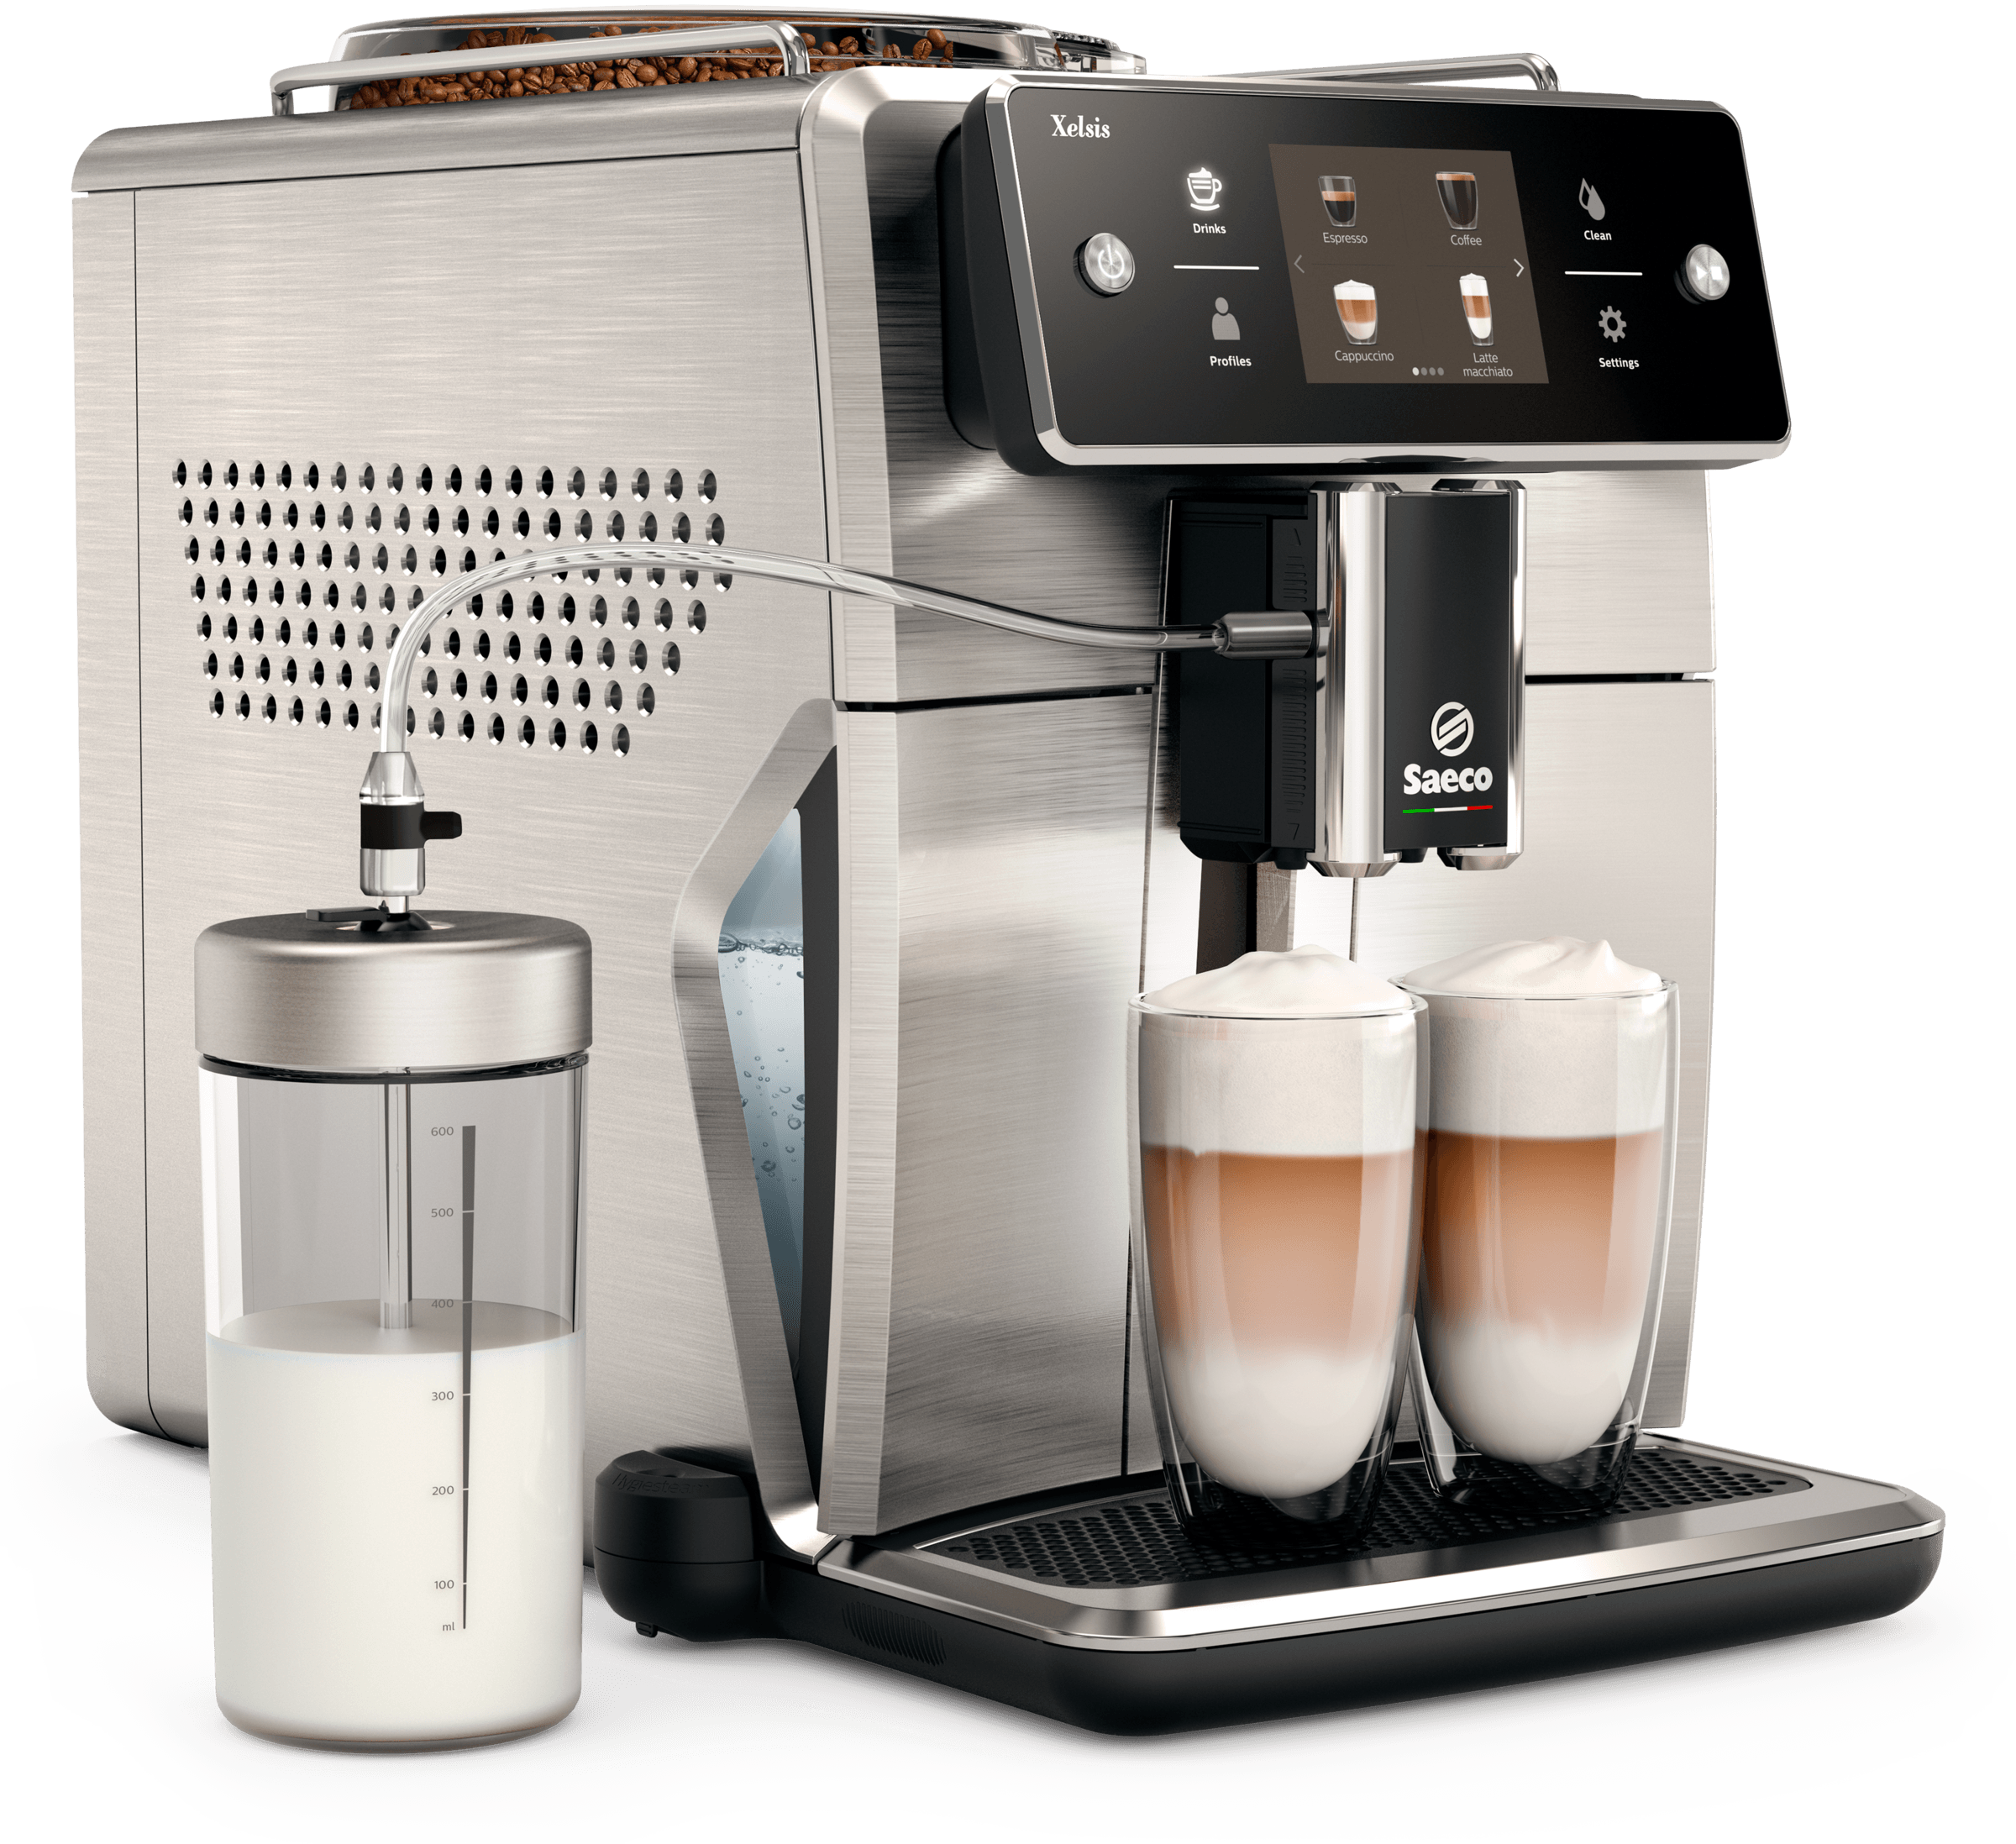 Saeco Cofee machine in Stainless Steel color showcased by Corbeil Electro Store